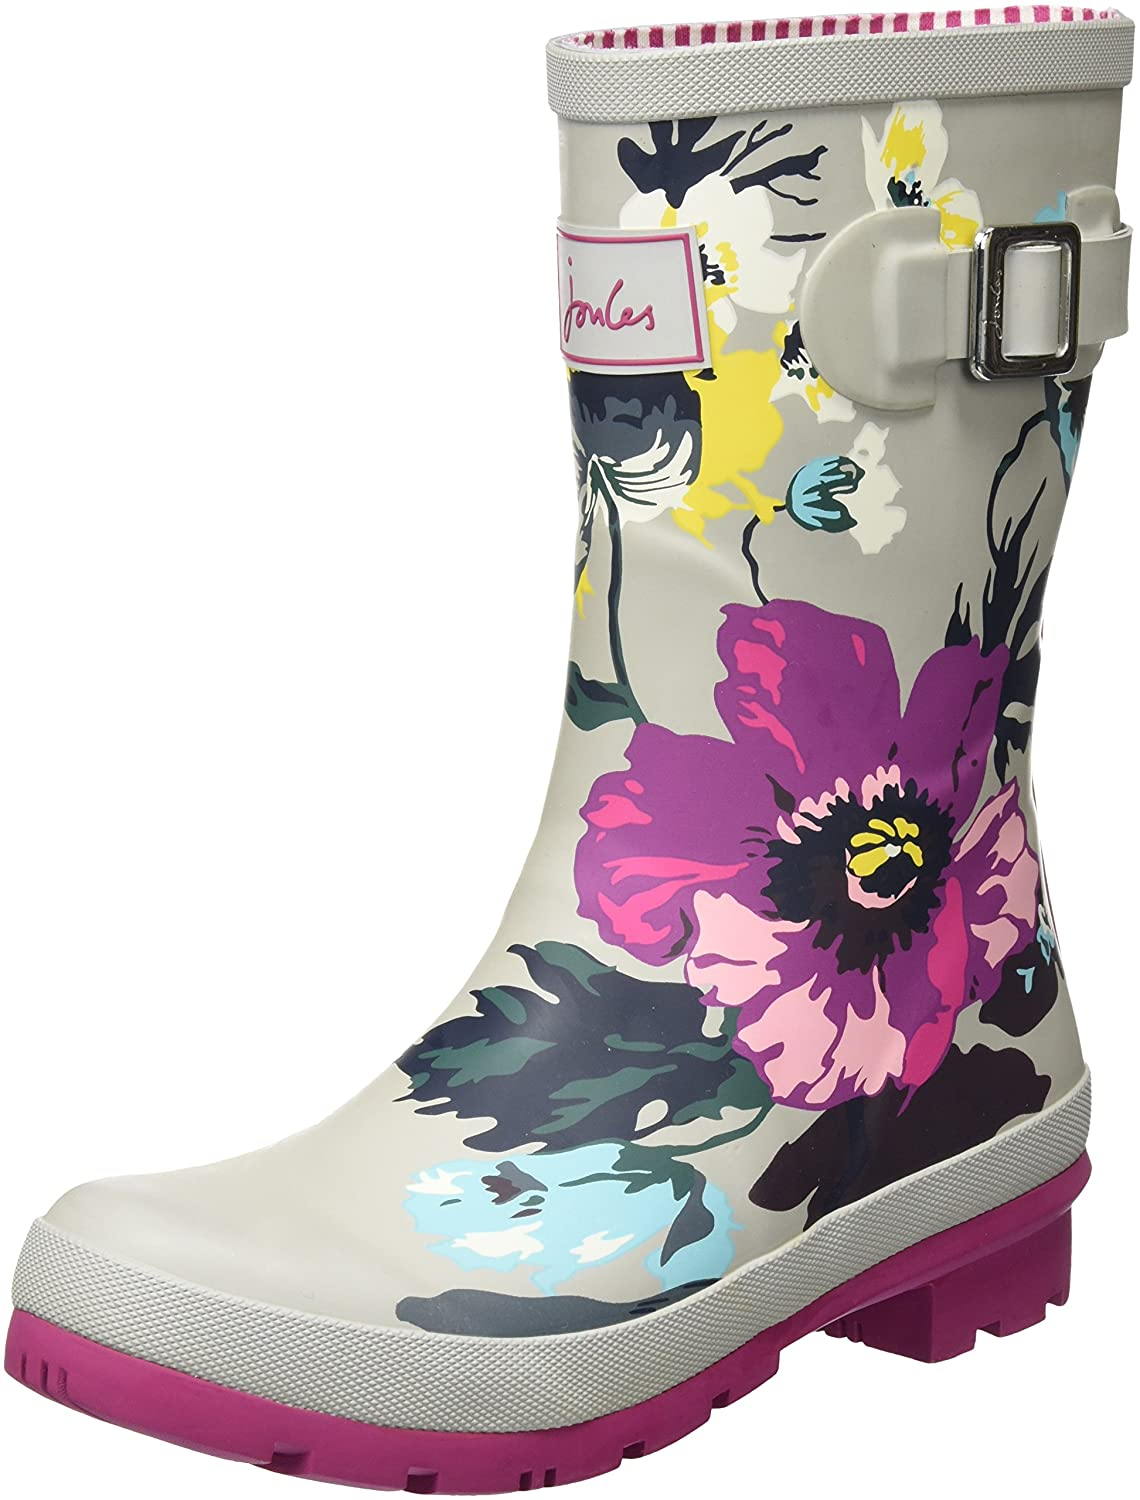 Joules Women's Molly Welly Rain Boot B07141P6LY 8 B(M) US|Silver Posy